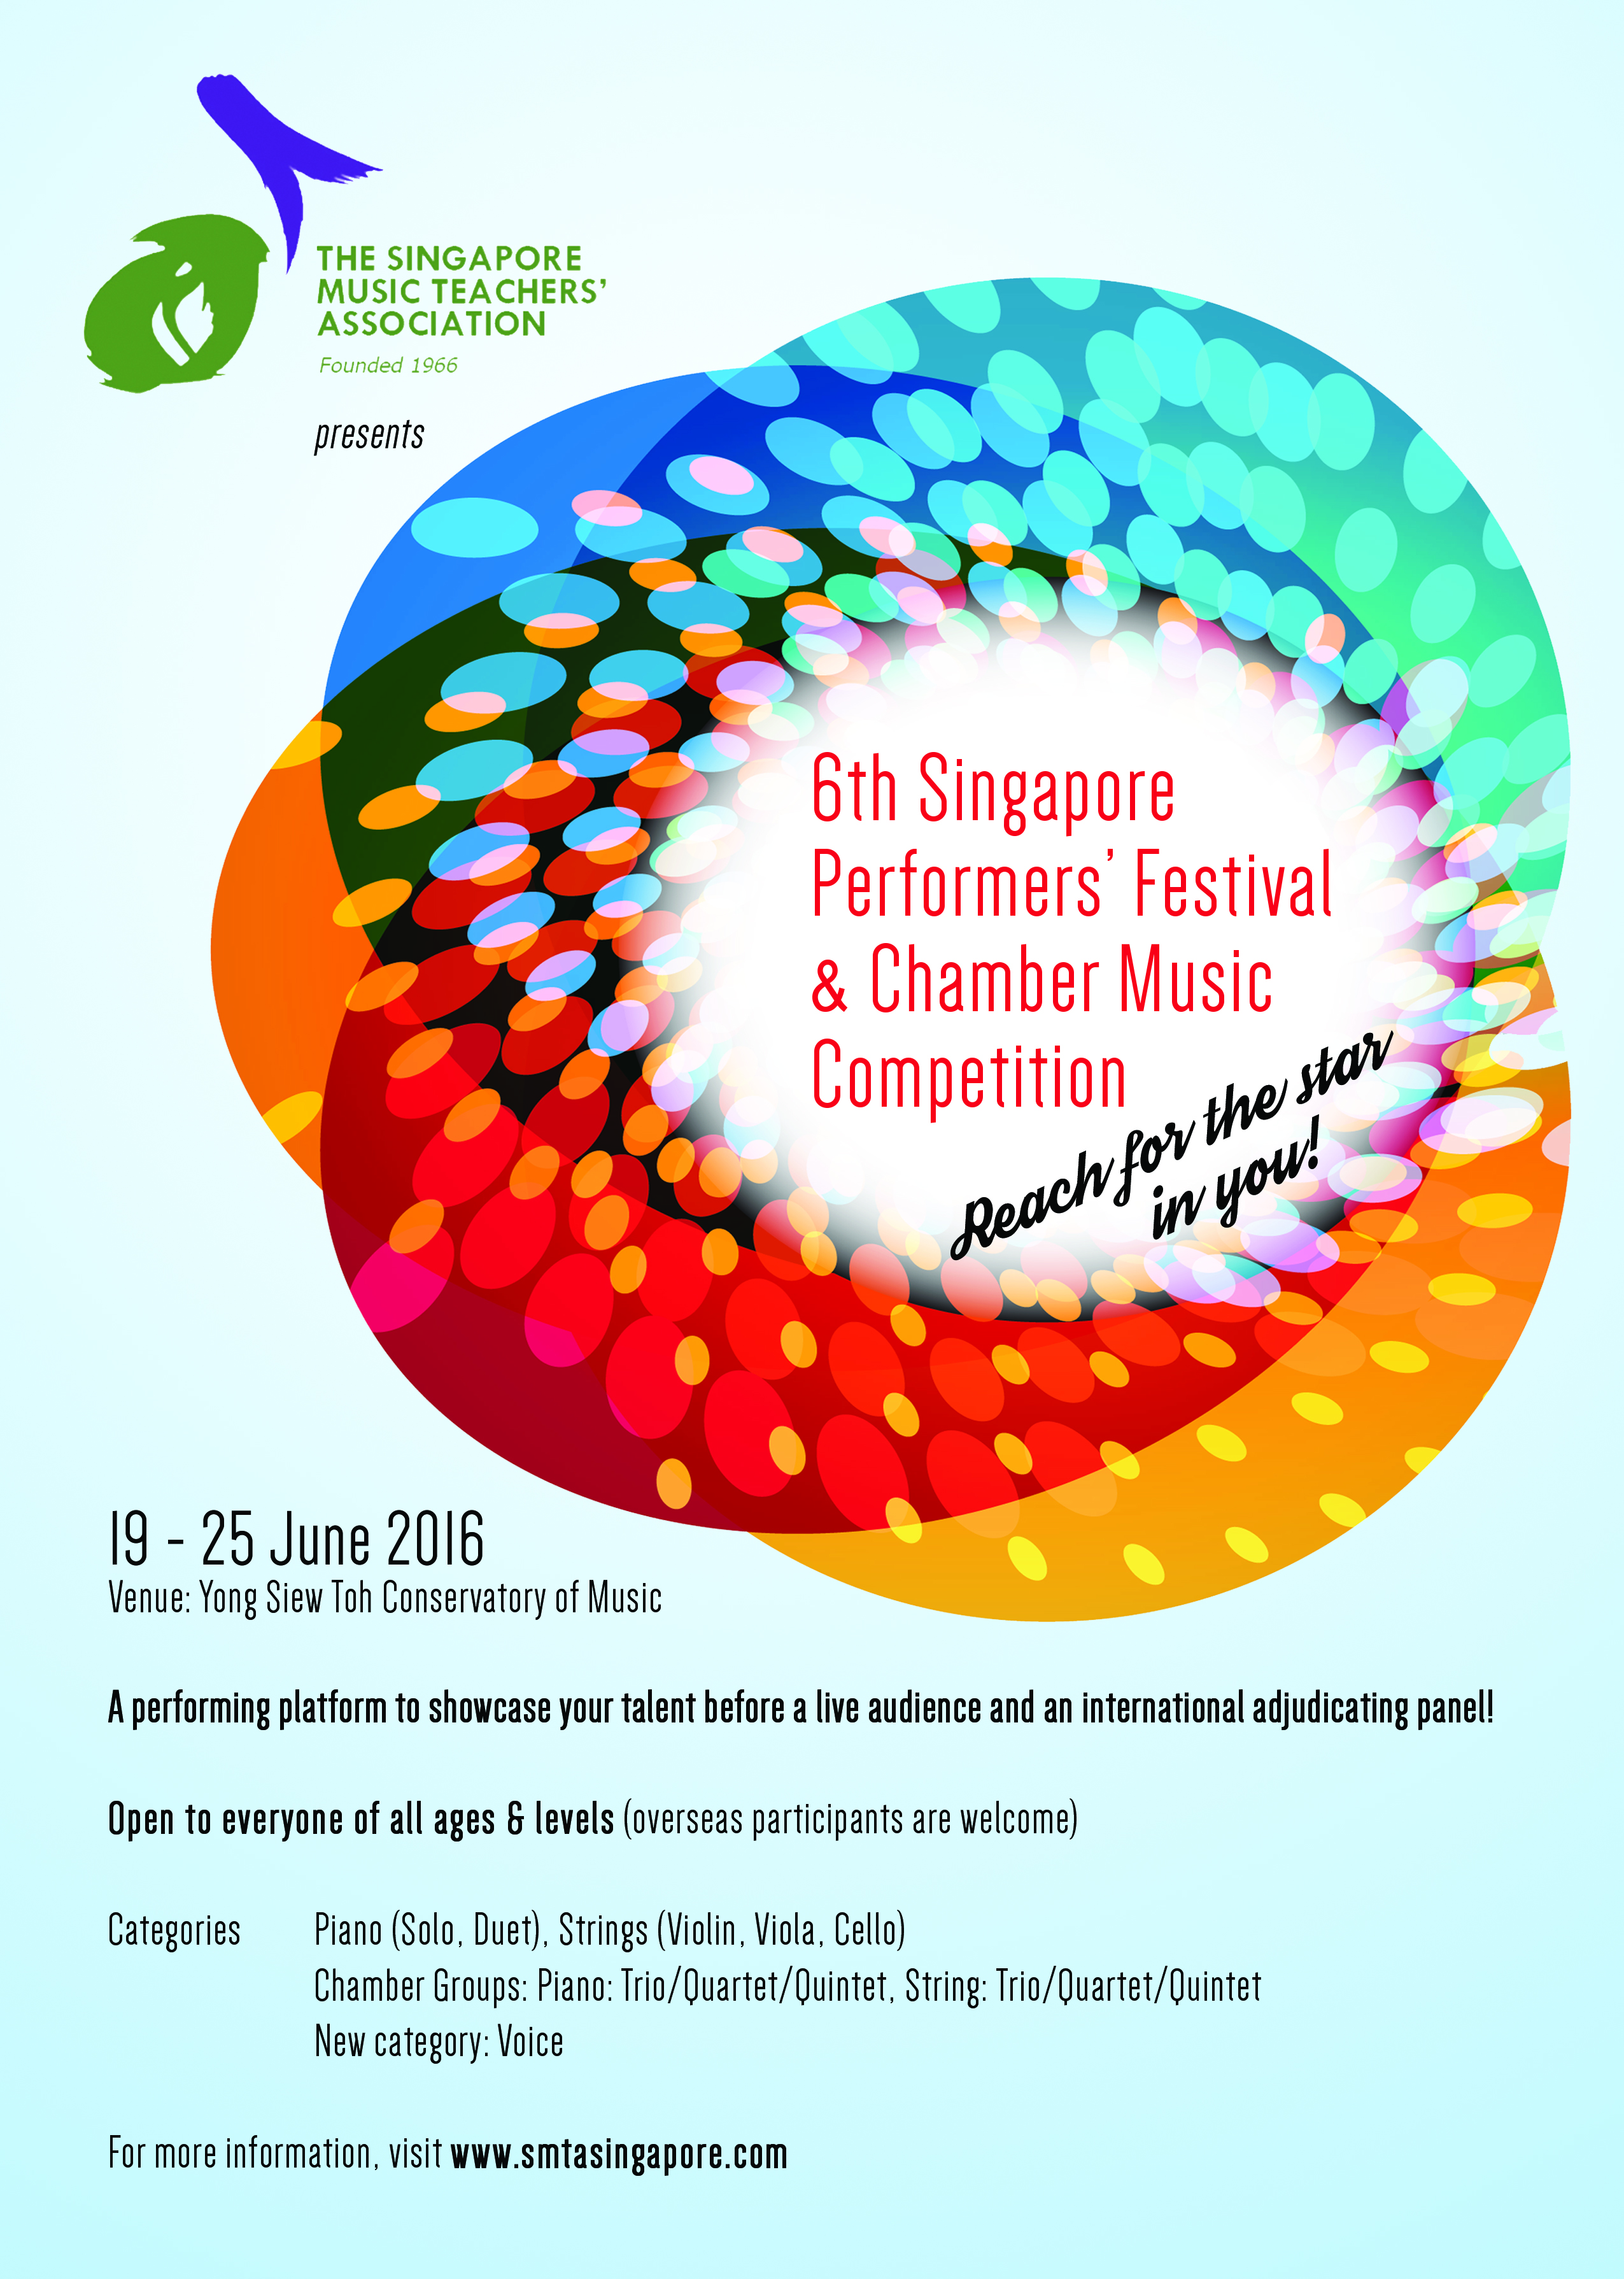 6th Singapore Performers' Festival & Chamber Music Competition 2016